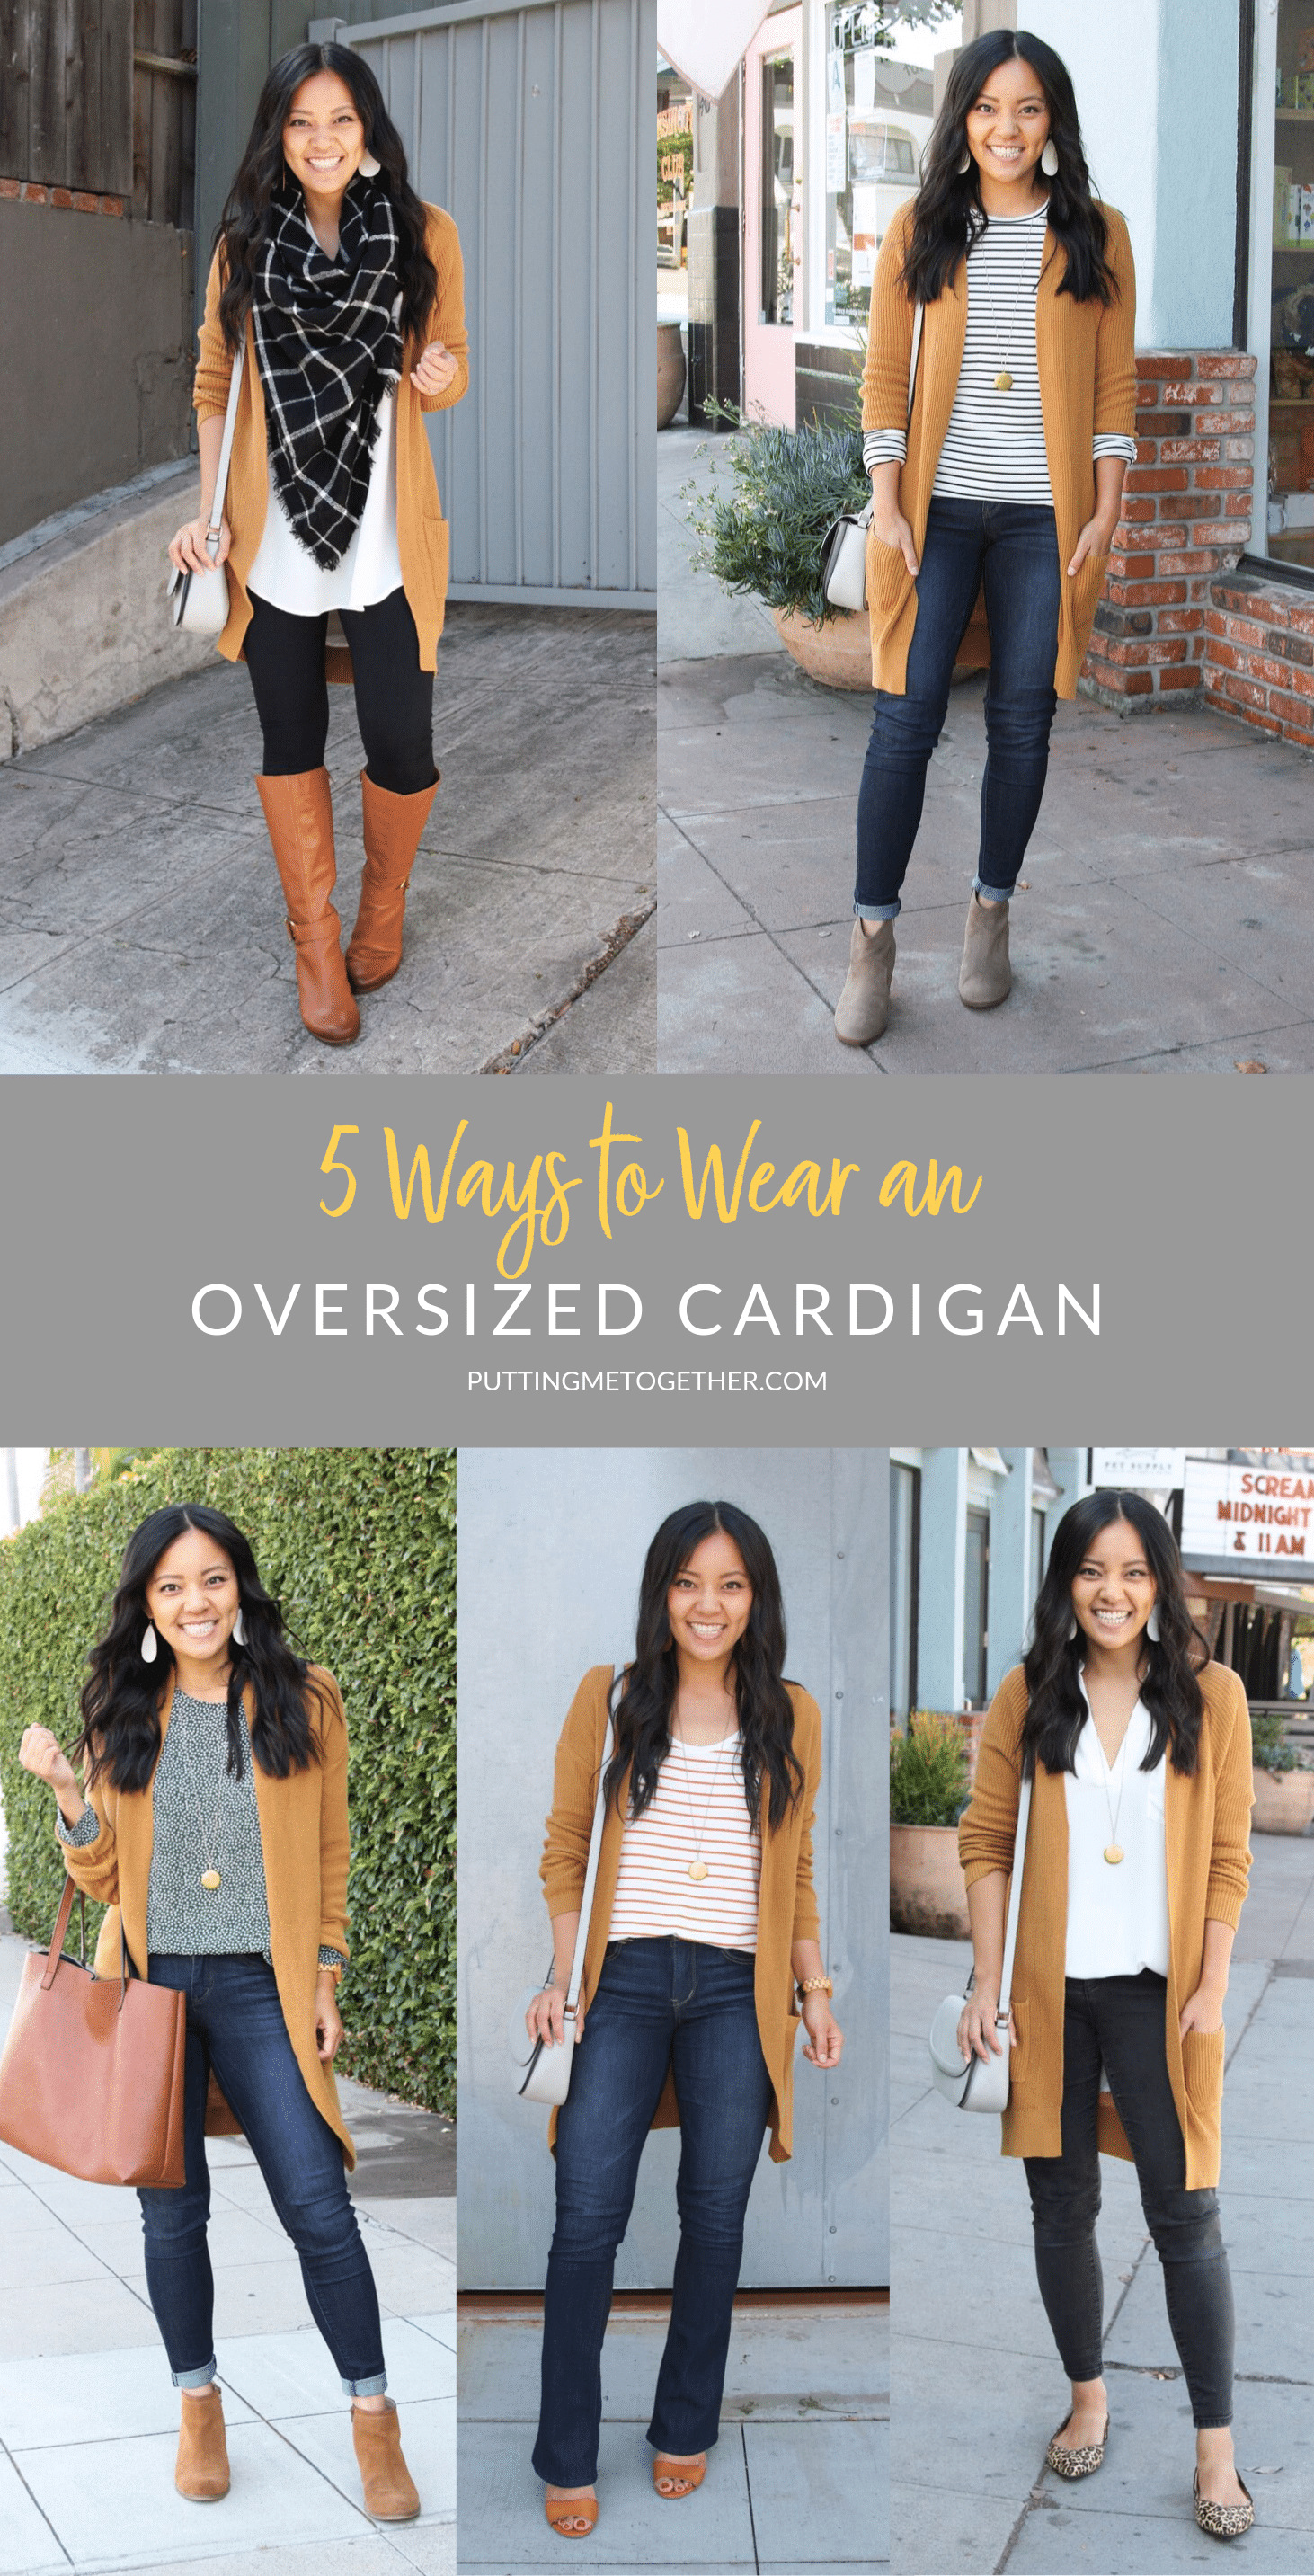 5 Ways to wear an oversized cardigan